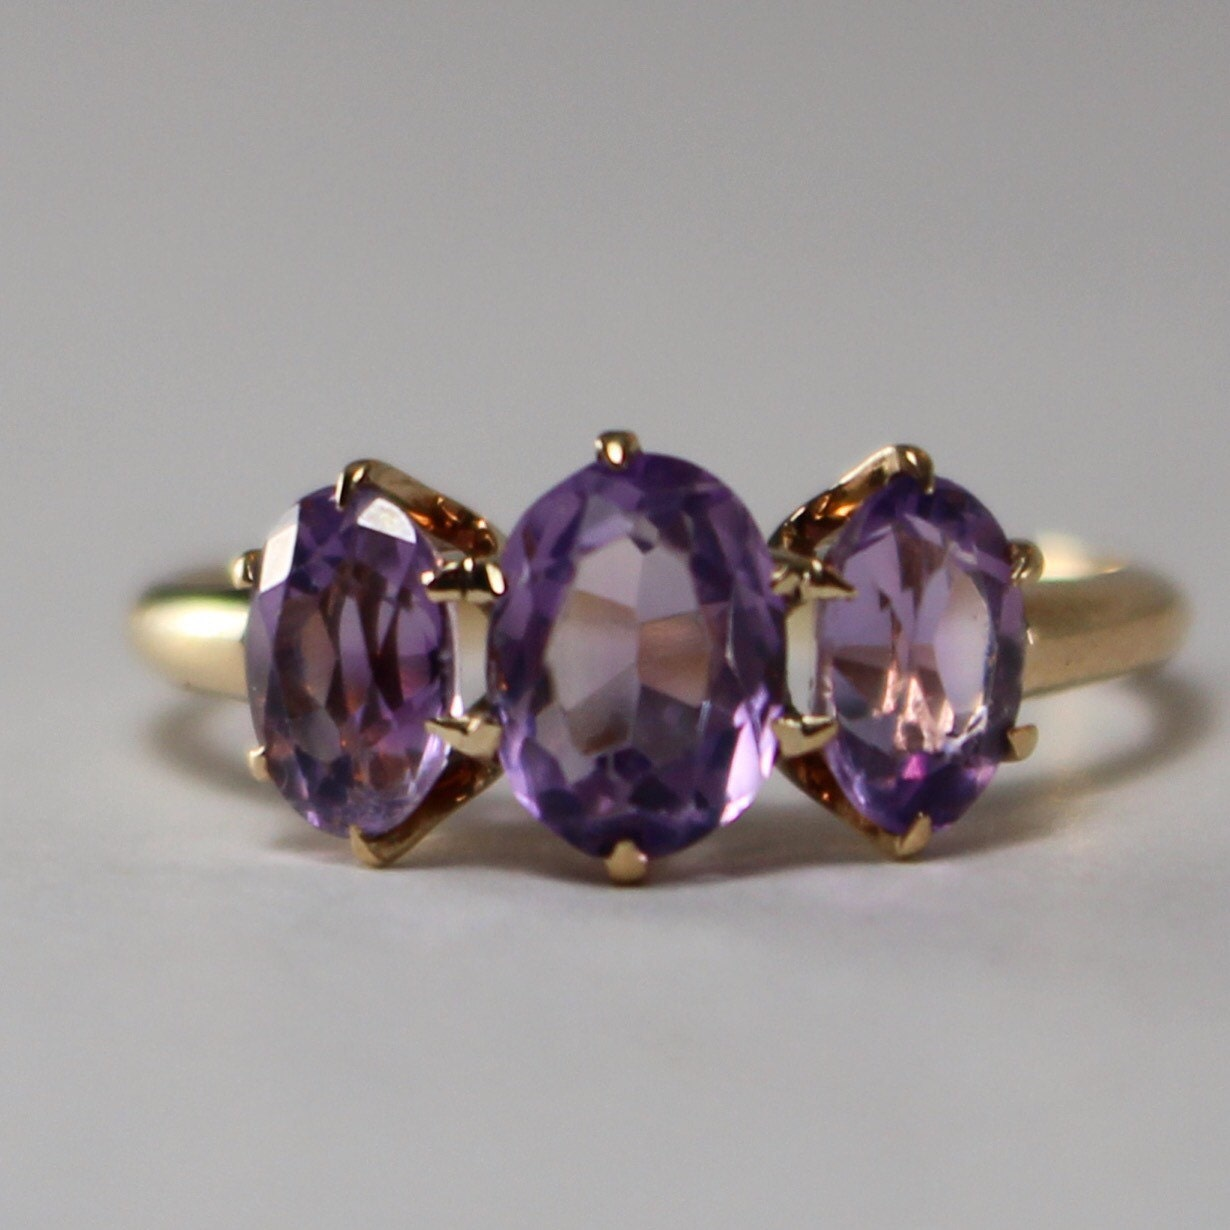 amethyst ring vintage - photo #16